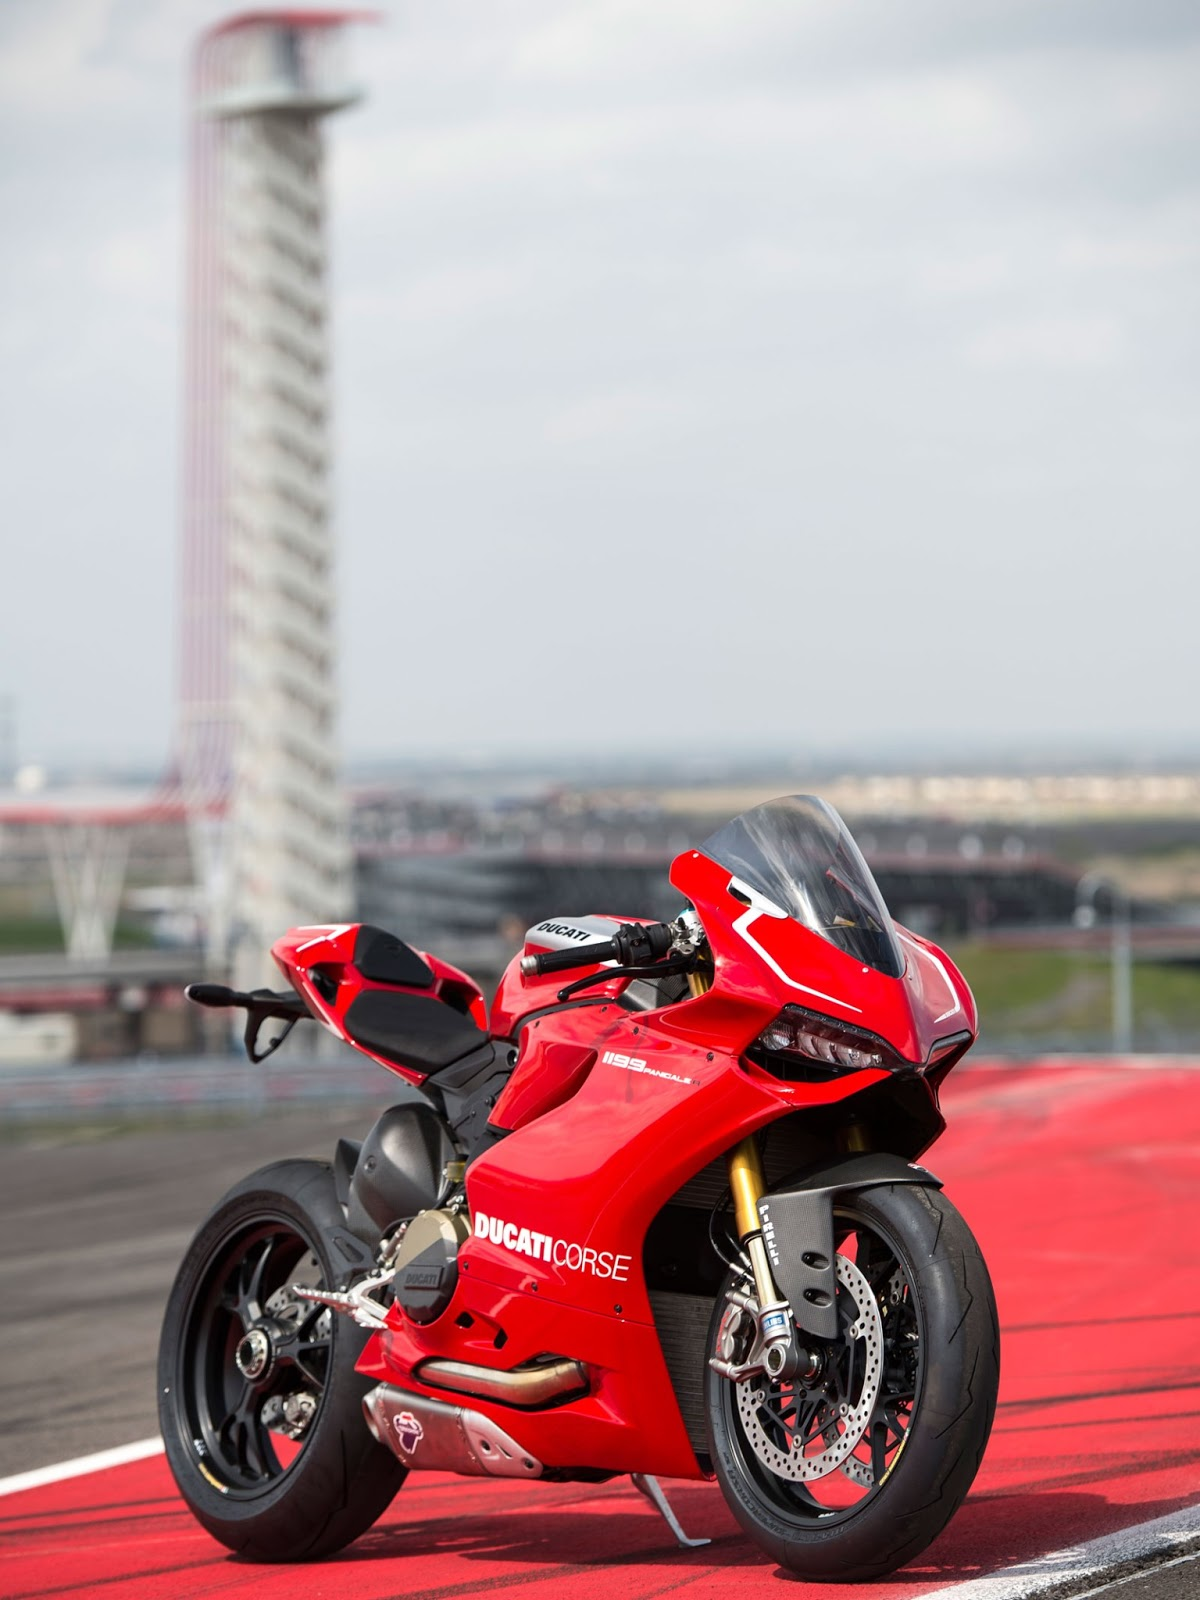 ducati 1199 panigale r price ducati gallery. Black Bedroom Furniture Sets. Home Design Ideas